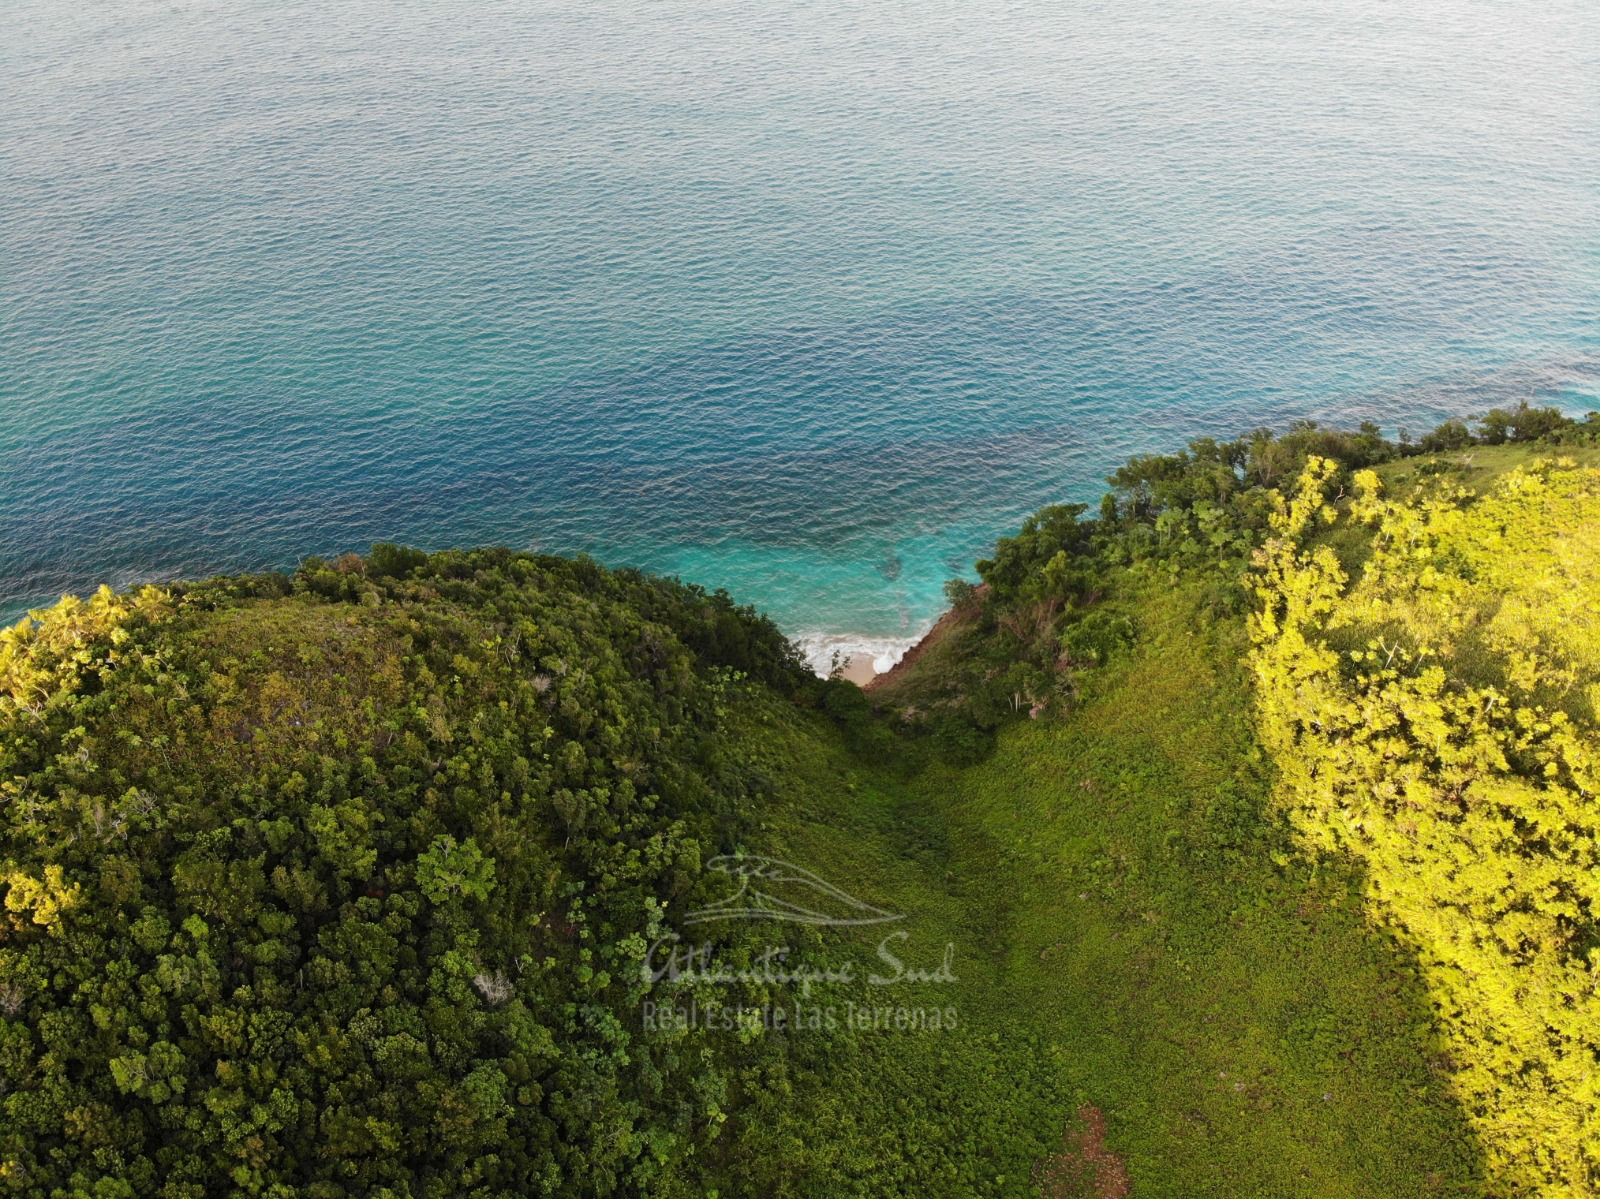 Cliff Land for Sale Las Terrenas 30.jpeg